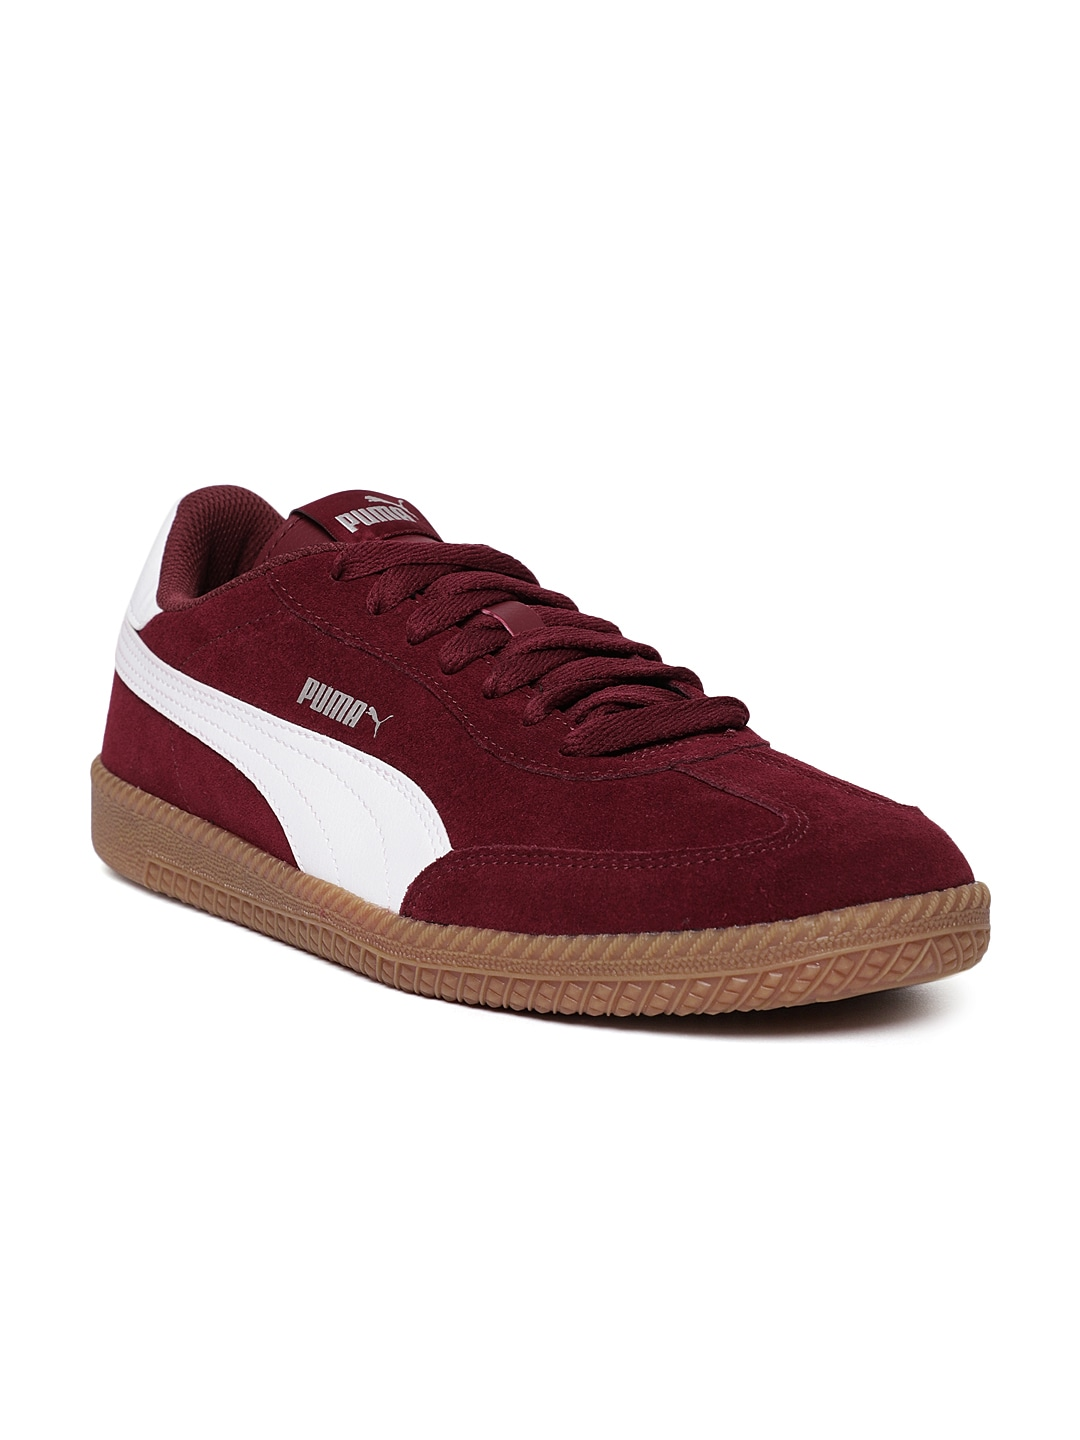 b3b5bb15b36 Cup Casual Shoes - Buy Cup Casual Shoes online in India